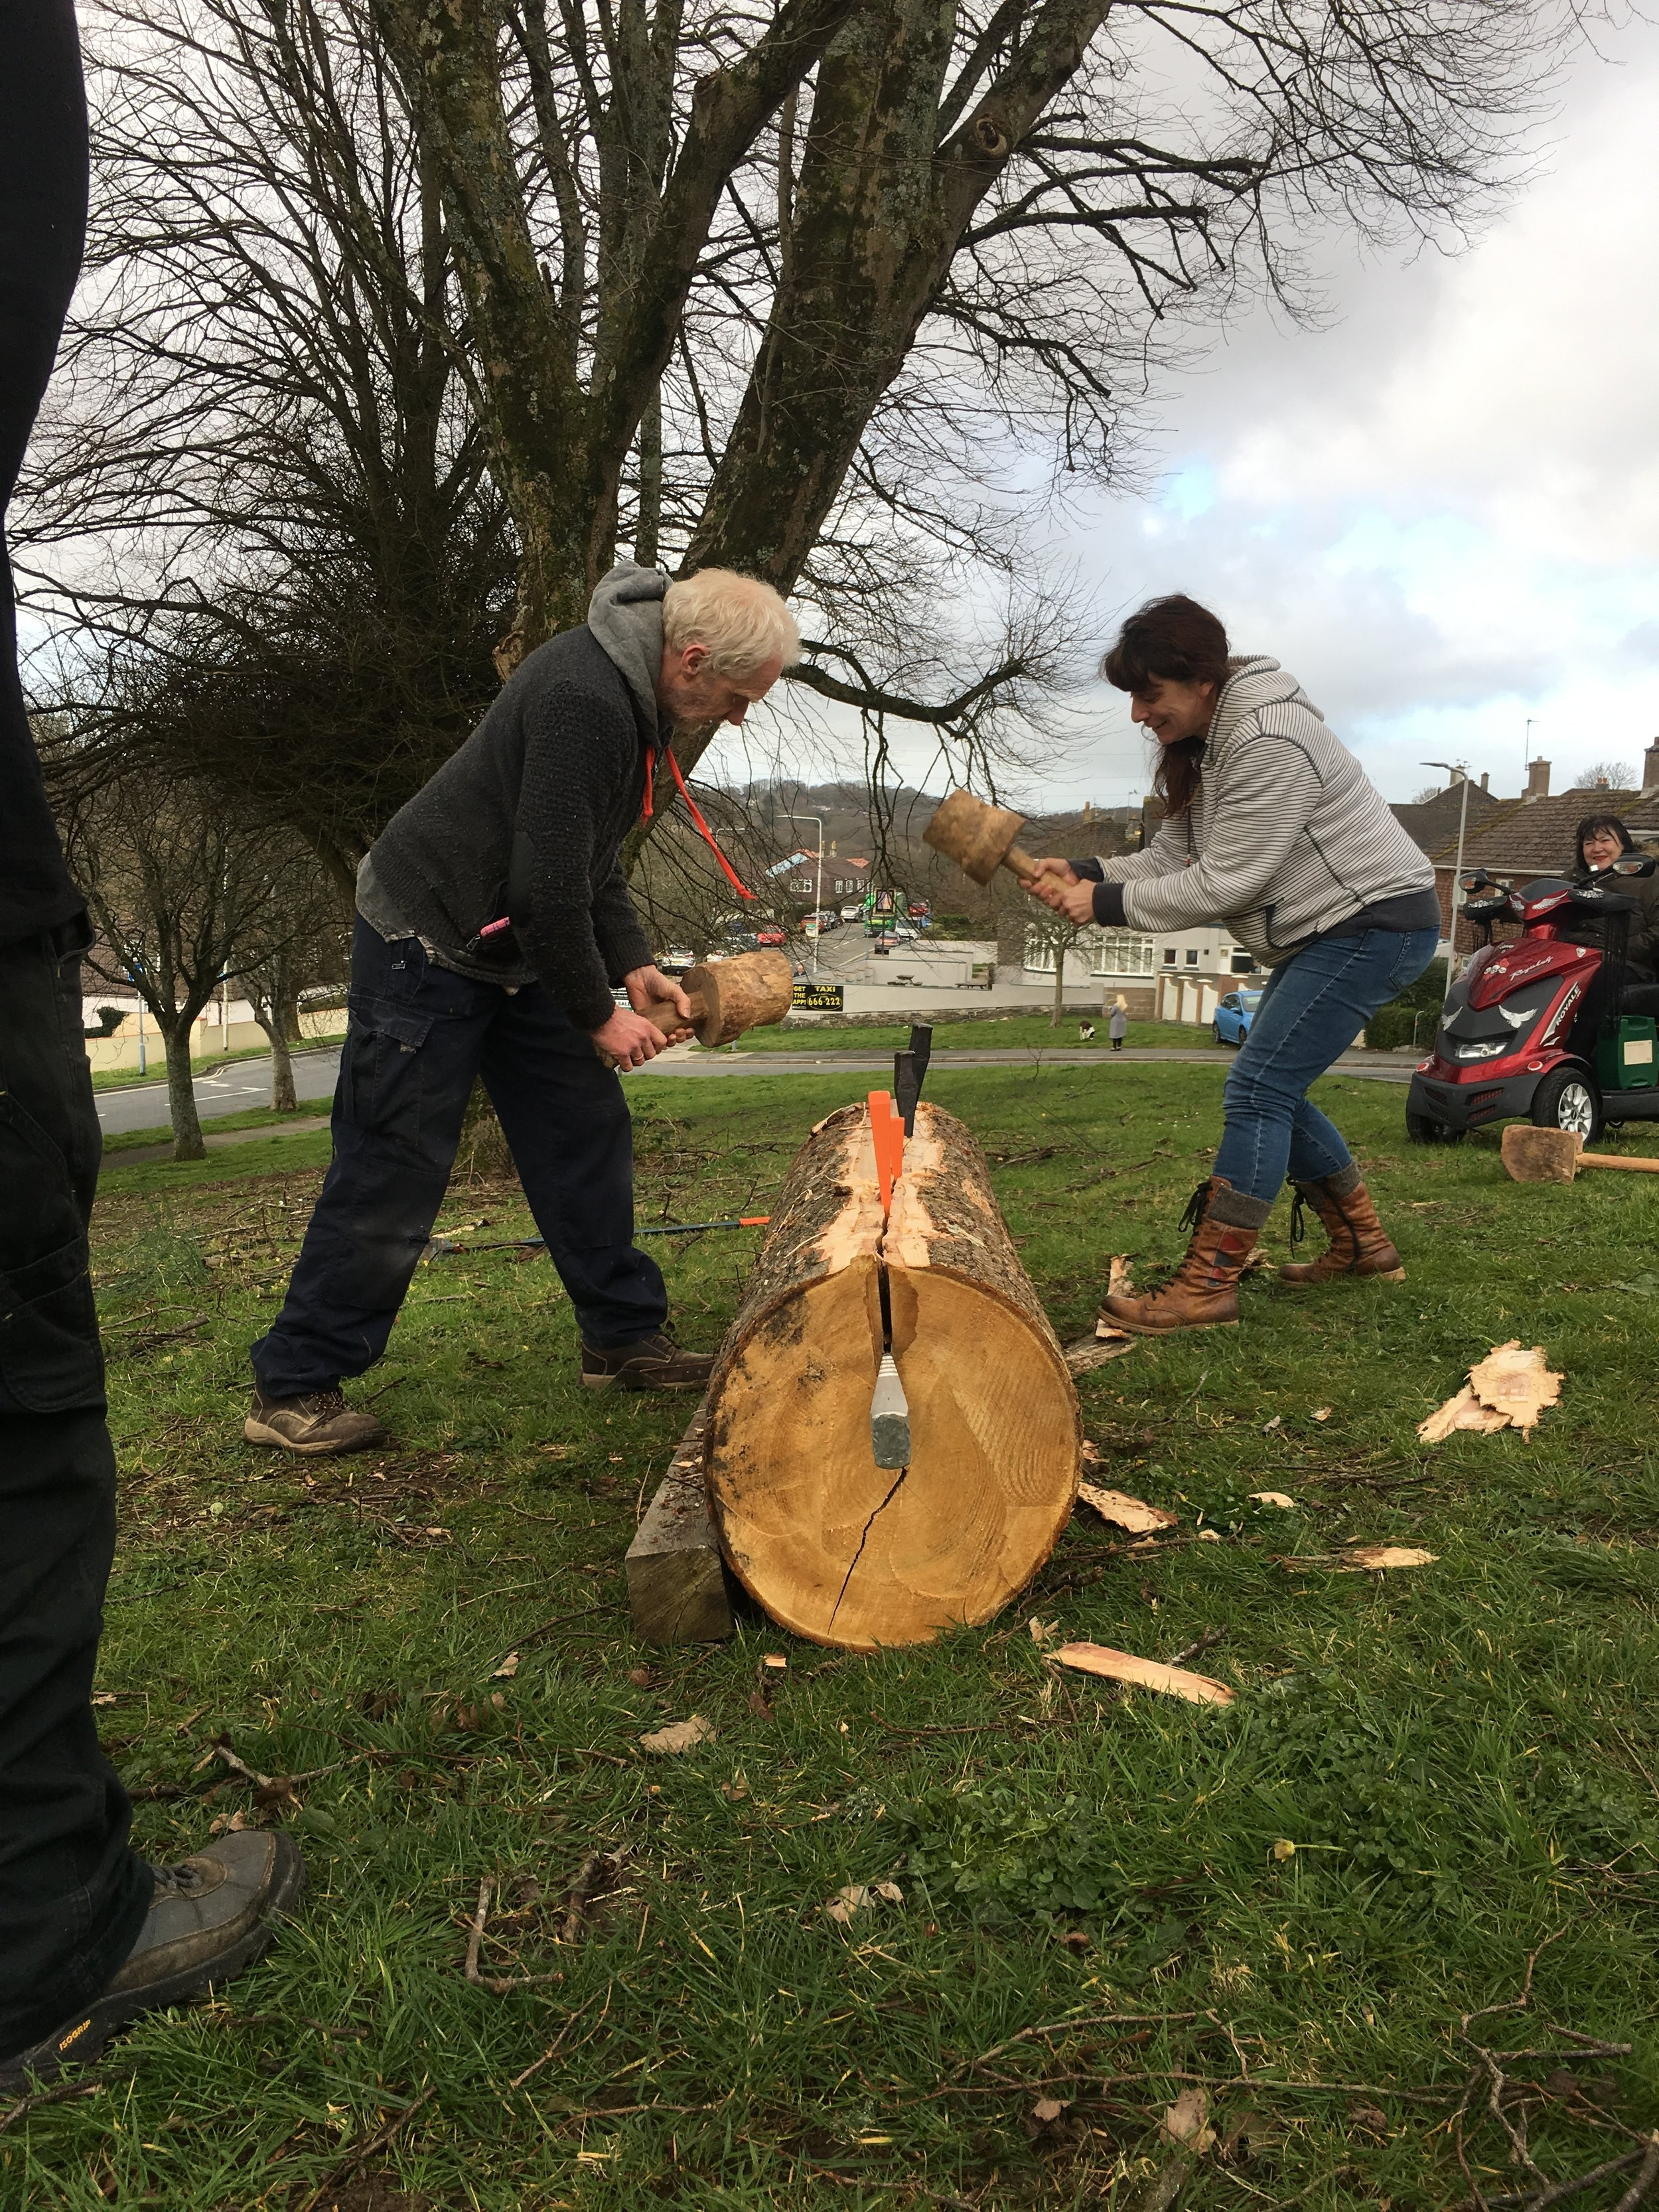 Cleaving the log by hand with mallets and wedges